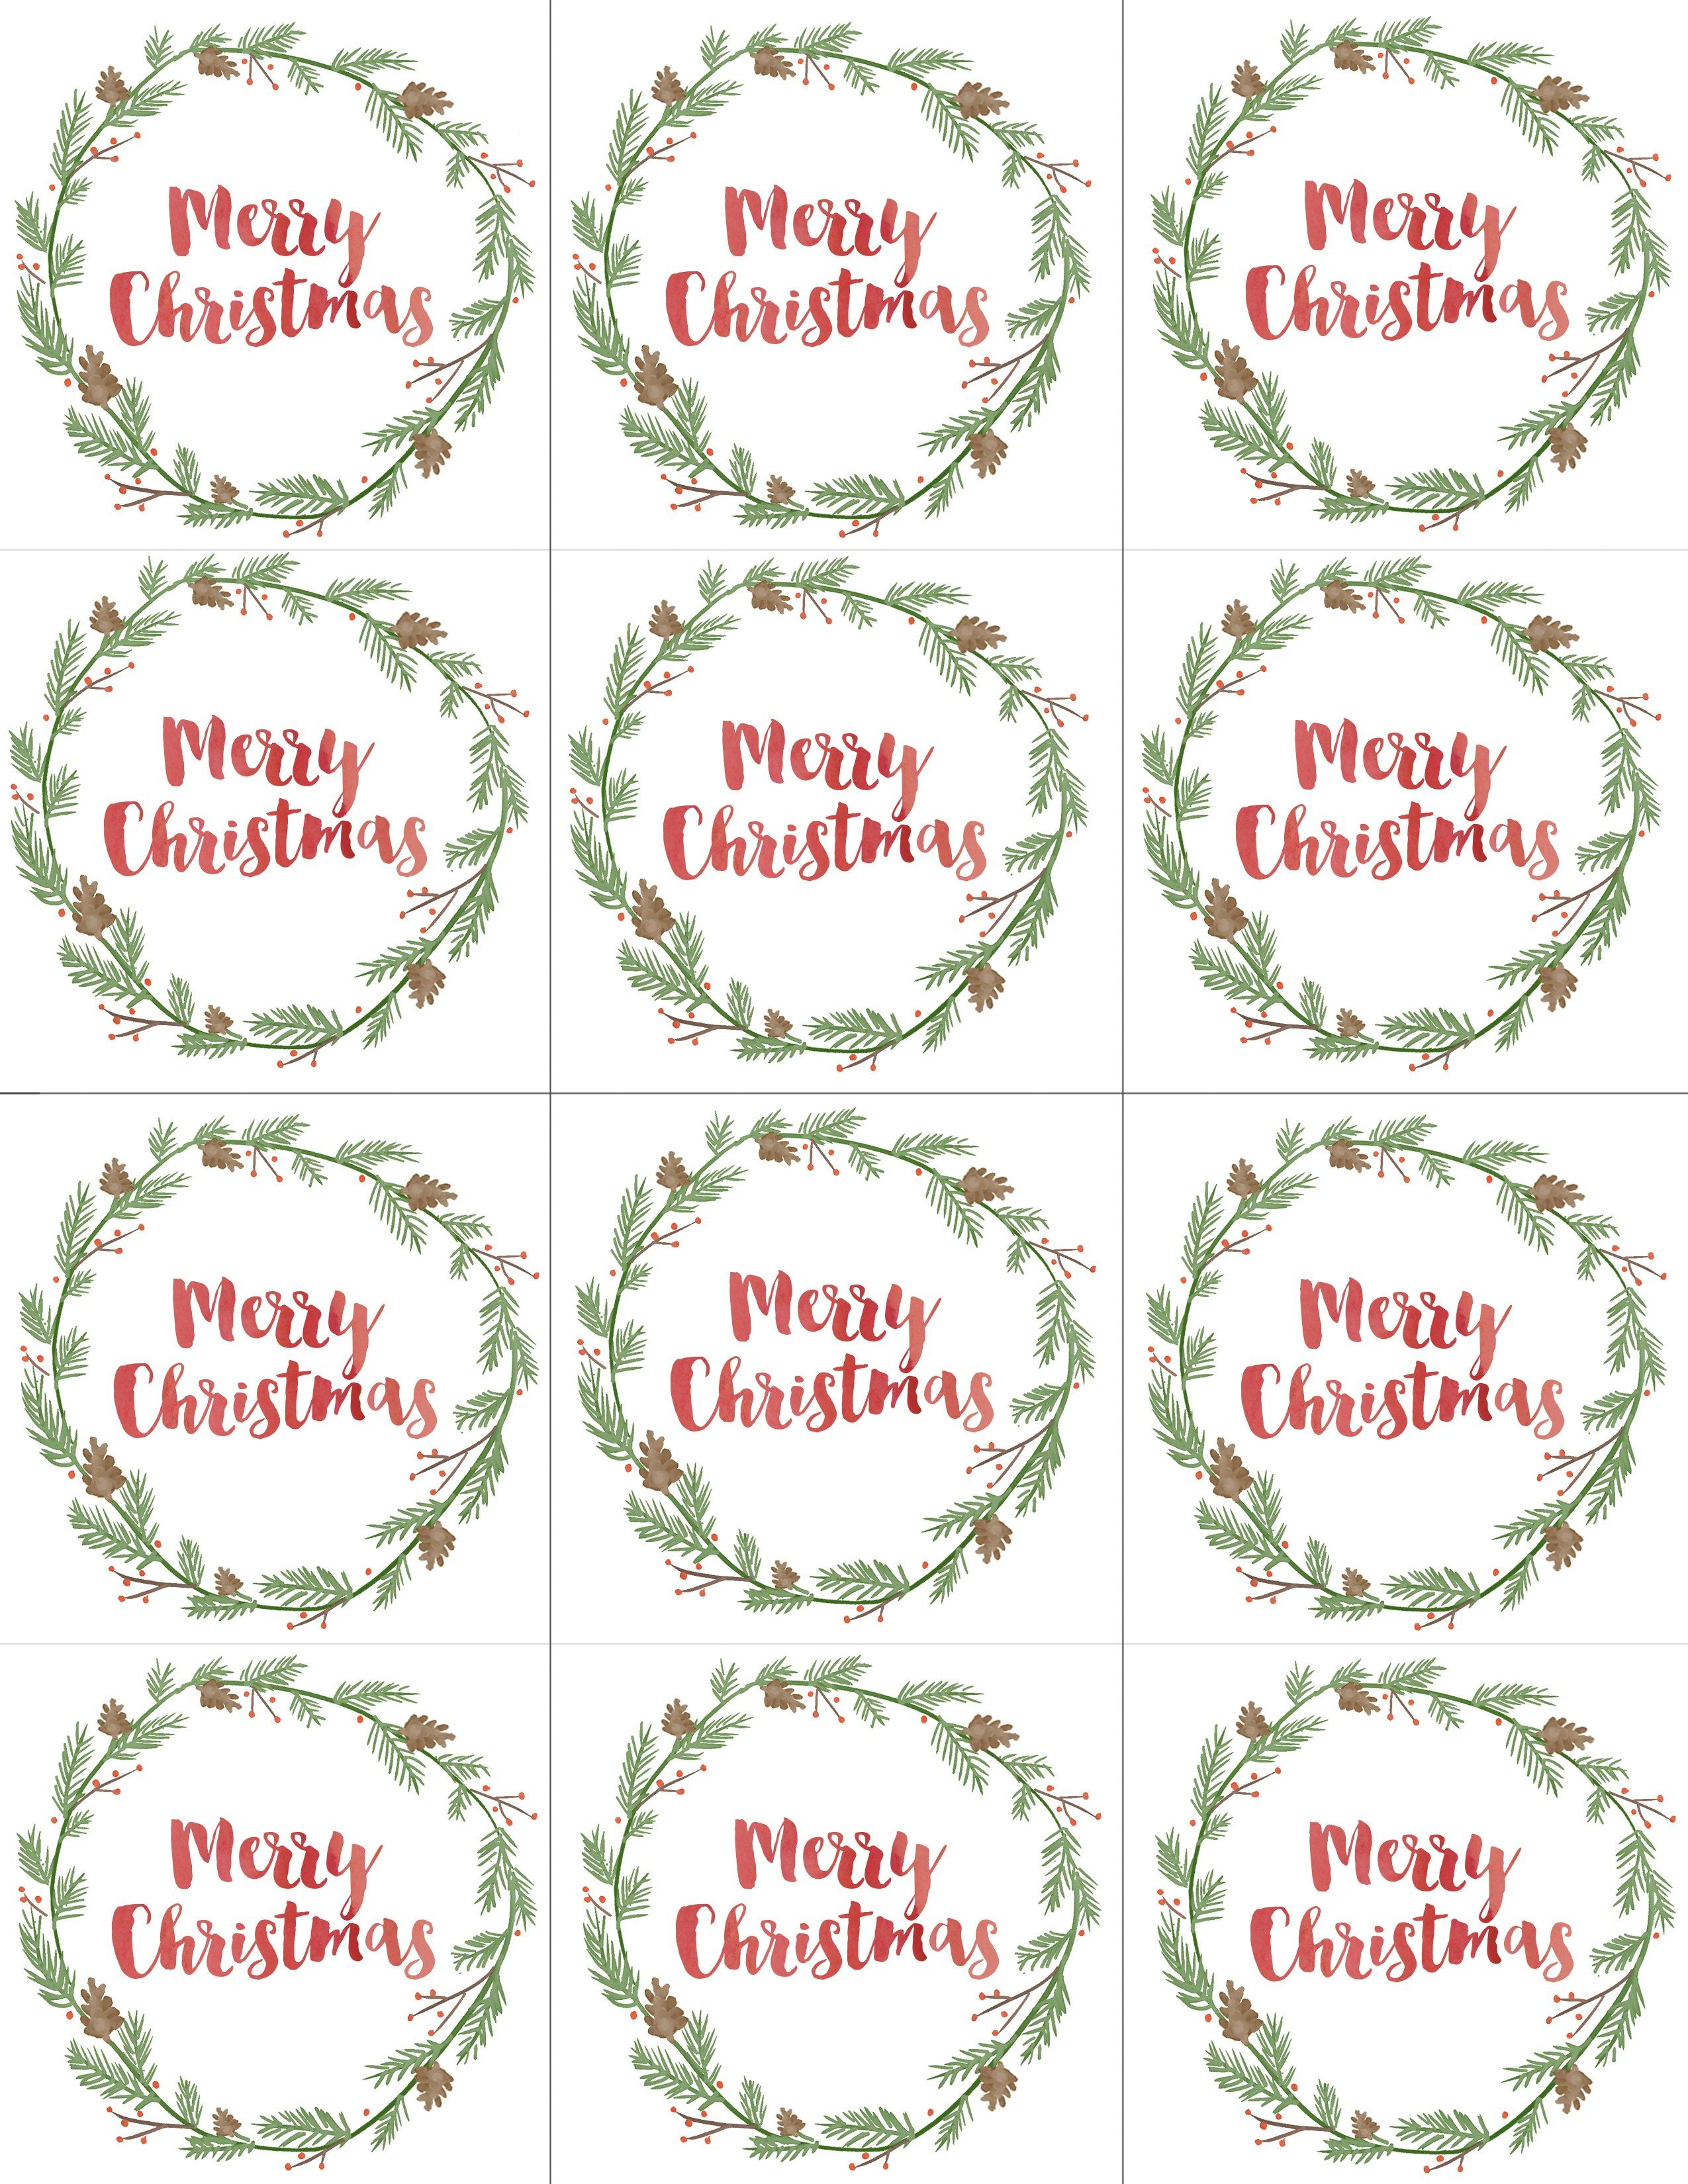 Hand Painted Gift Tags Free Printable   Christmas   Christmas Gift - Free Printable Holiday Labels